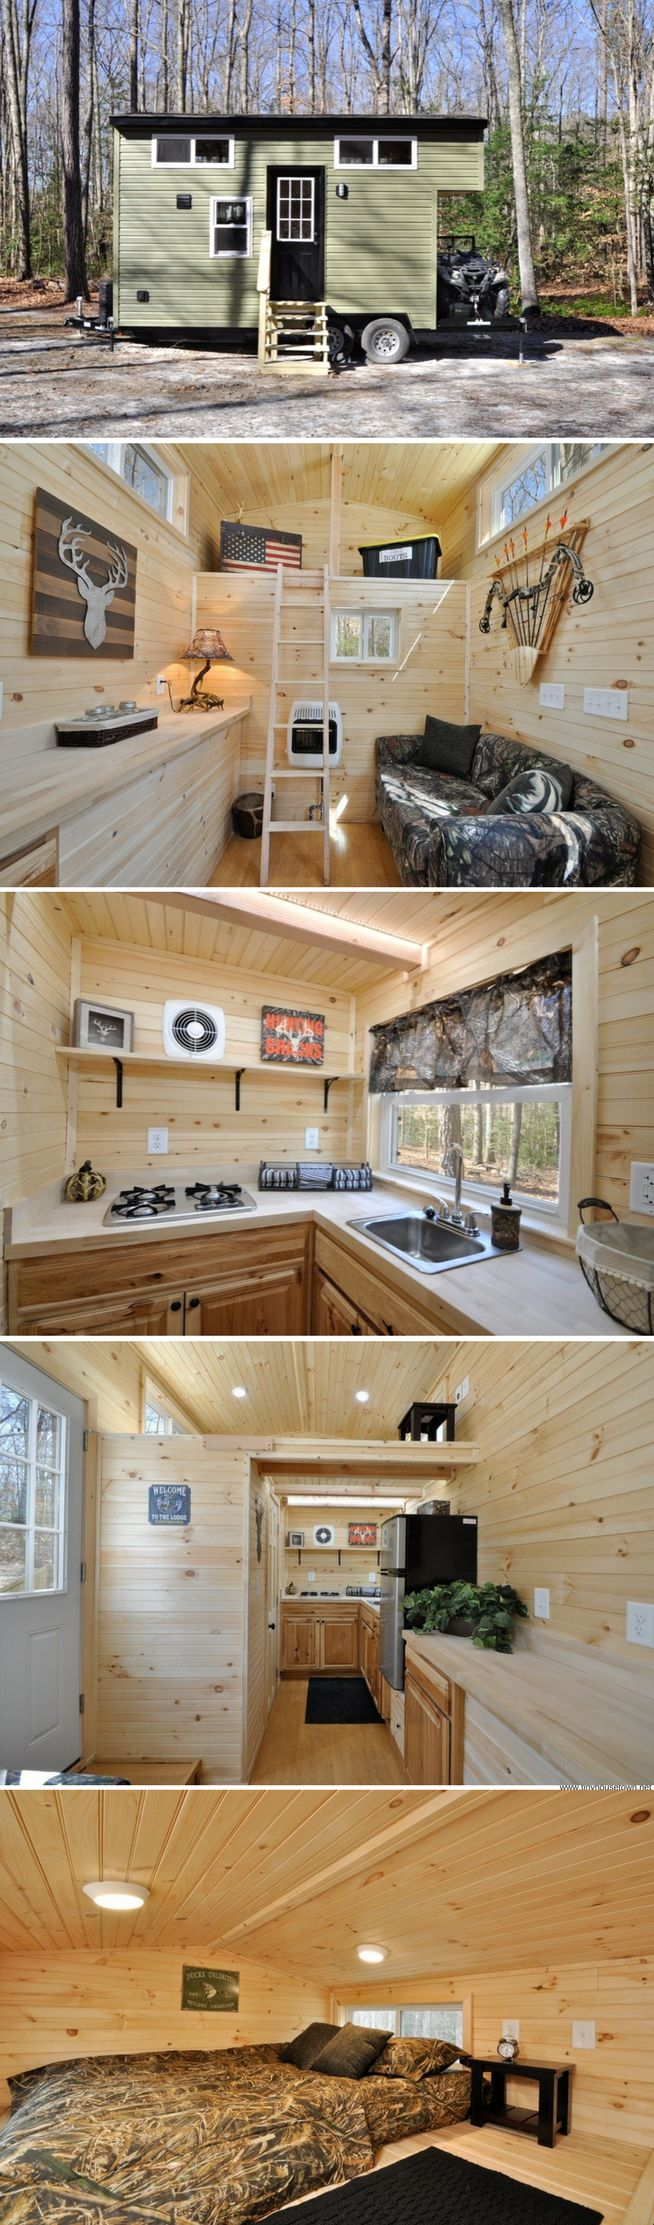 The Timberland: a 195 sq ft home from the Tiny House Building Company